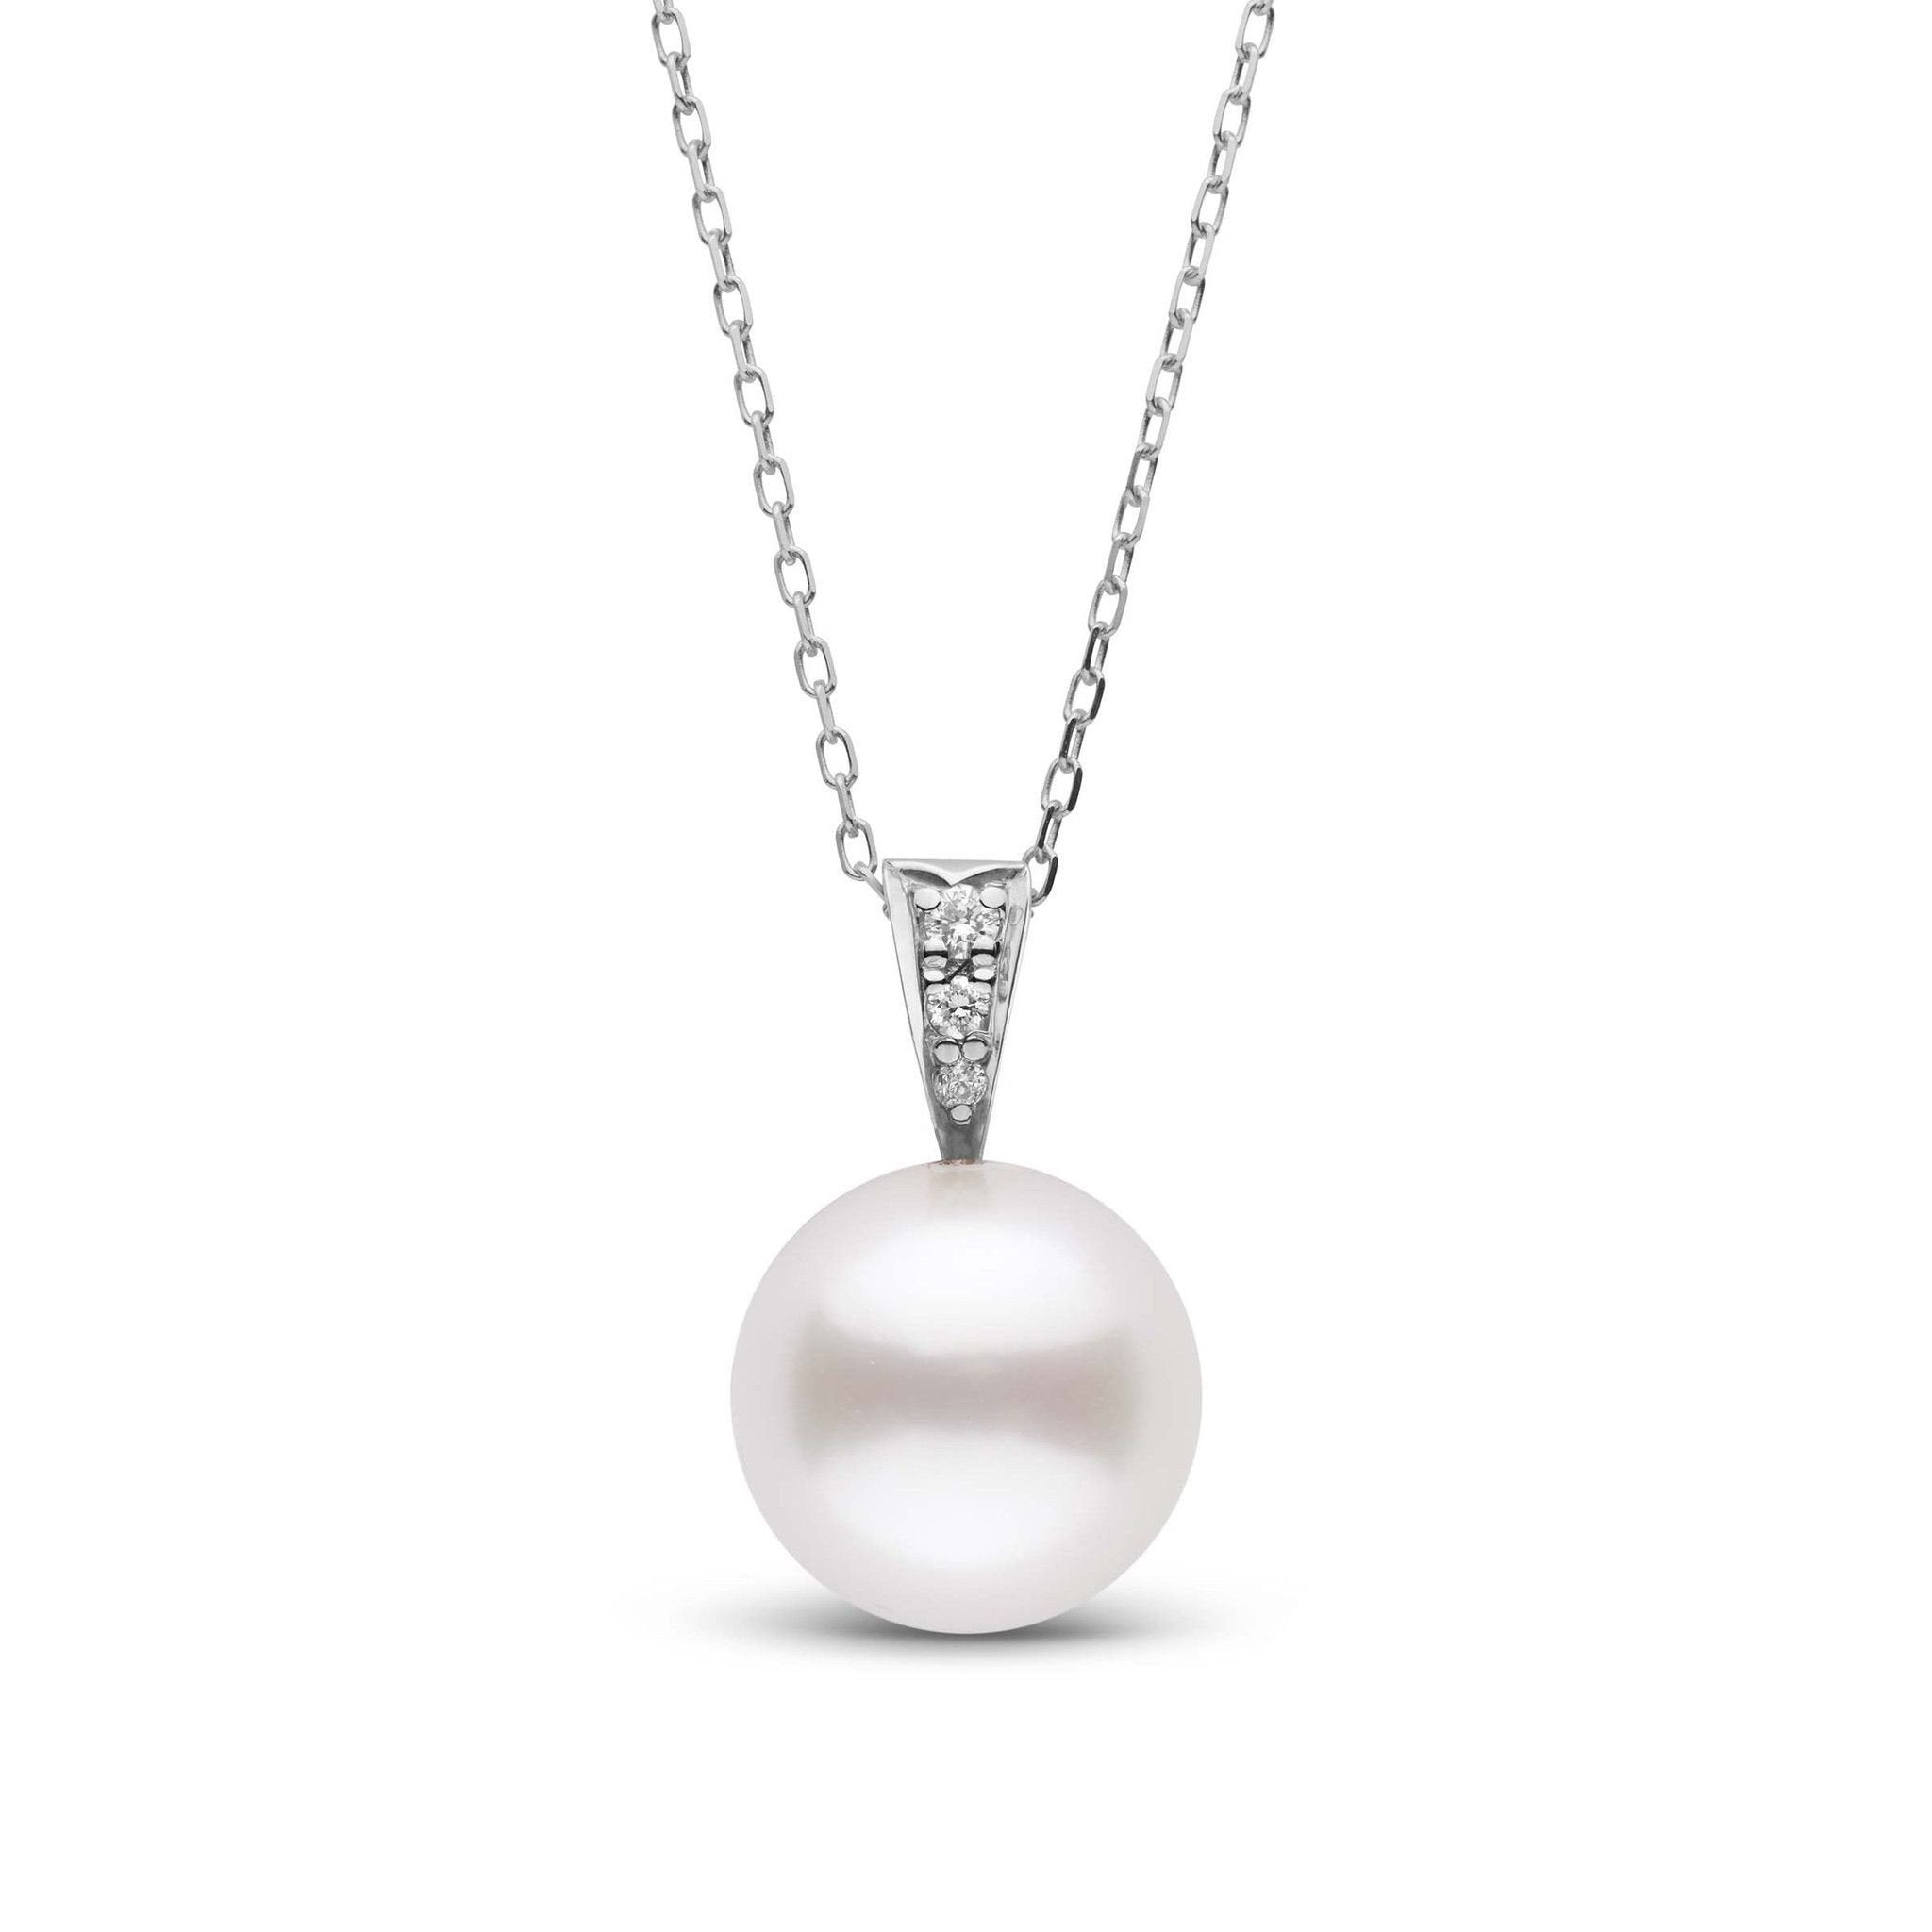 Desire Collection White 10.0-11.0 mm South Sea Pearl and Diamond Pendant